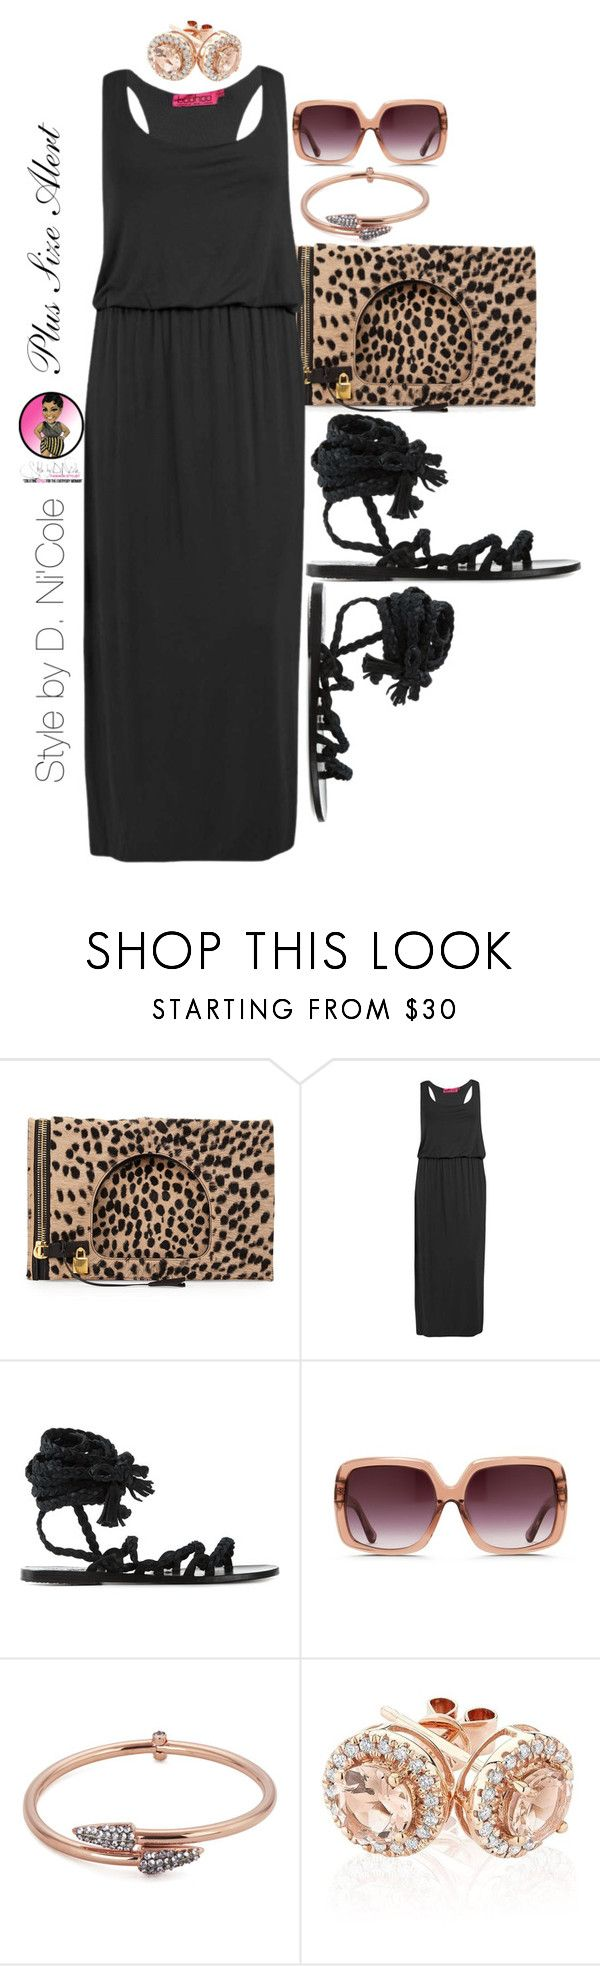 """Untitled #2400"" by stylebydnicole ❤ liked on Polyvore featuring Tom Ford, Boohoo, Ancient Greek Sandals, Matthew Williamson, Katie Rowland and Reeds Jewelers"